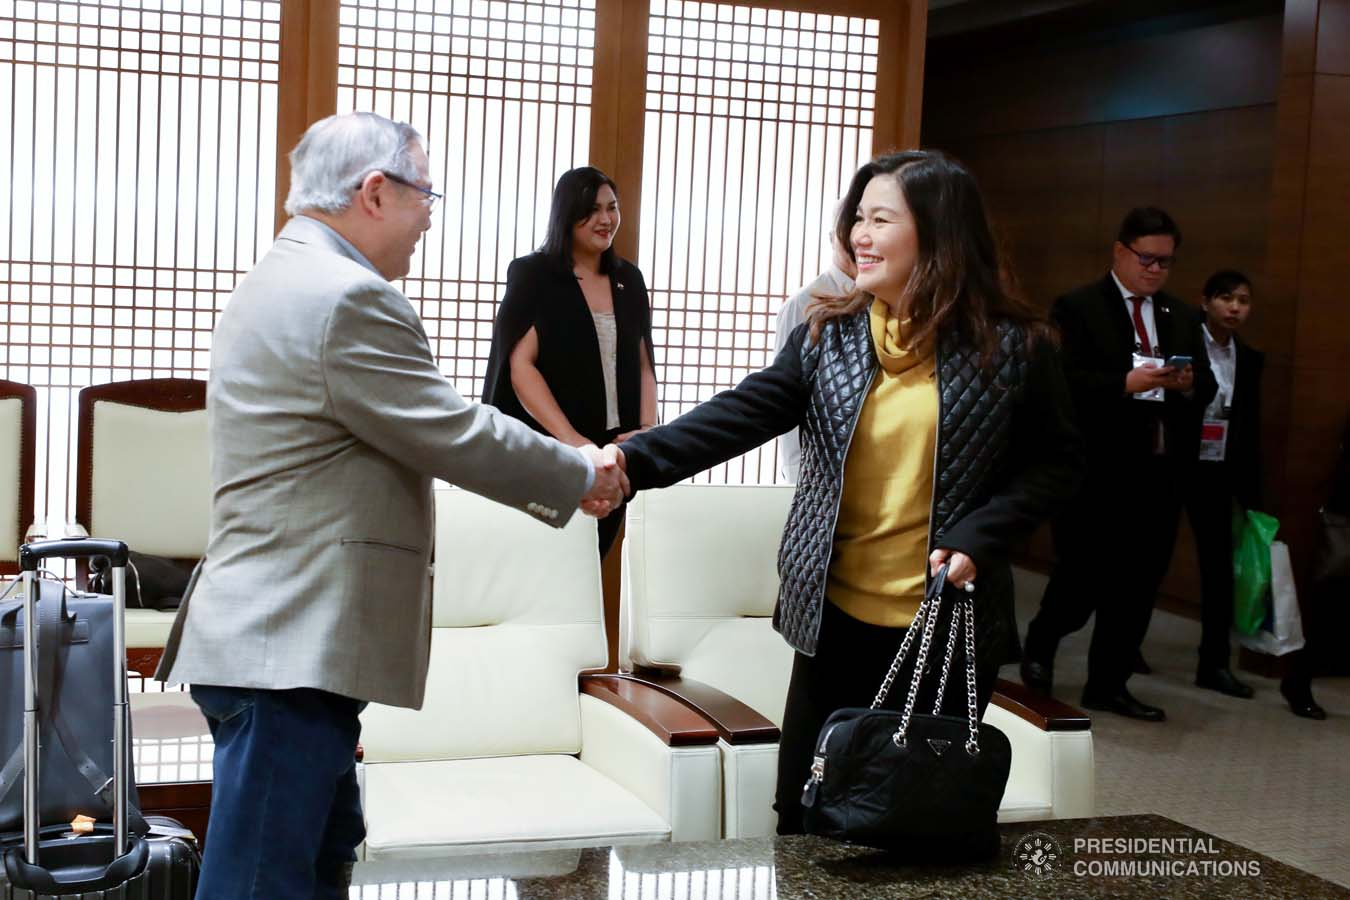 President Rodrigo Roa Duterte's partner Cielito Avanceña bids farewell to Foreign Affairs Secretary Teodoro Locsin Jr. as she prepares to leave for Manila after joining the President in various events during the Association of Southeast Asian Nations (ASEAN)-Republic of Korea Commemorative Summit in Busan on November 26, 2019. RICHARD MADELO/PRESIDENTIAL PHOTO